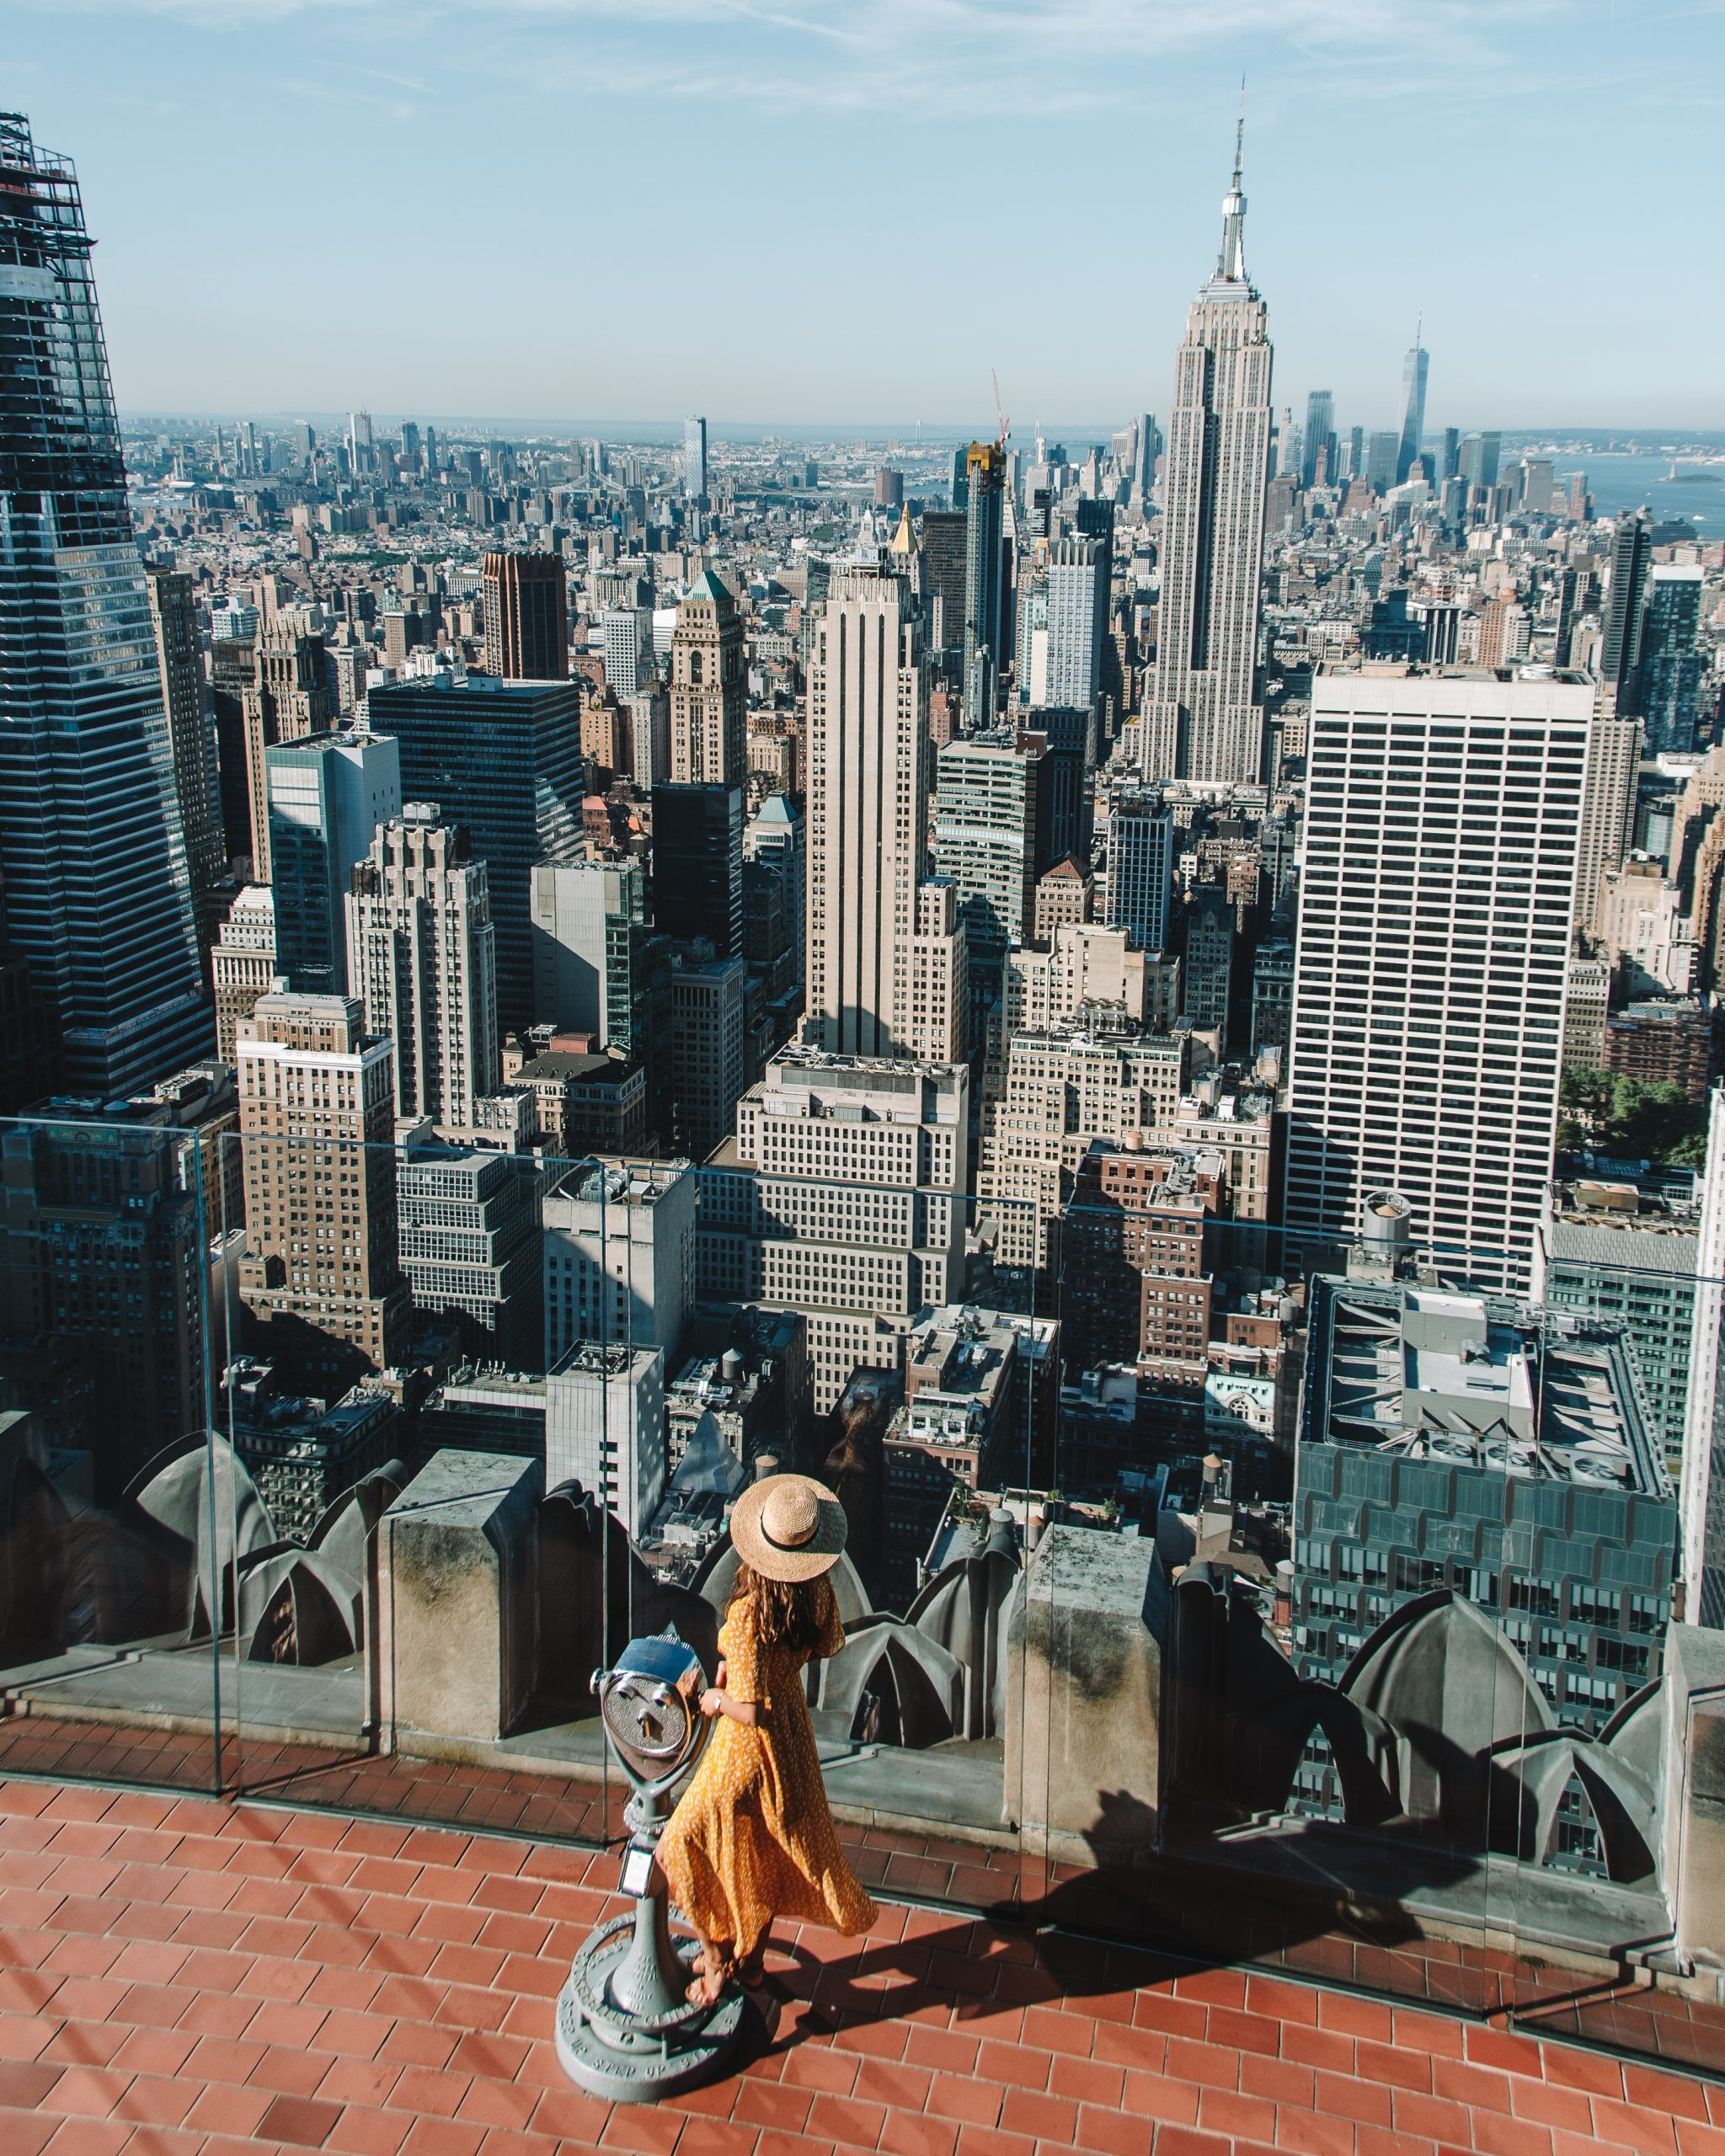 A Local's Guide to NYC: A Quick Trip to NYC